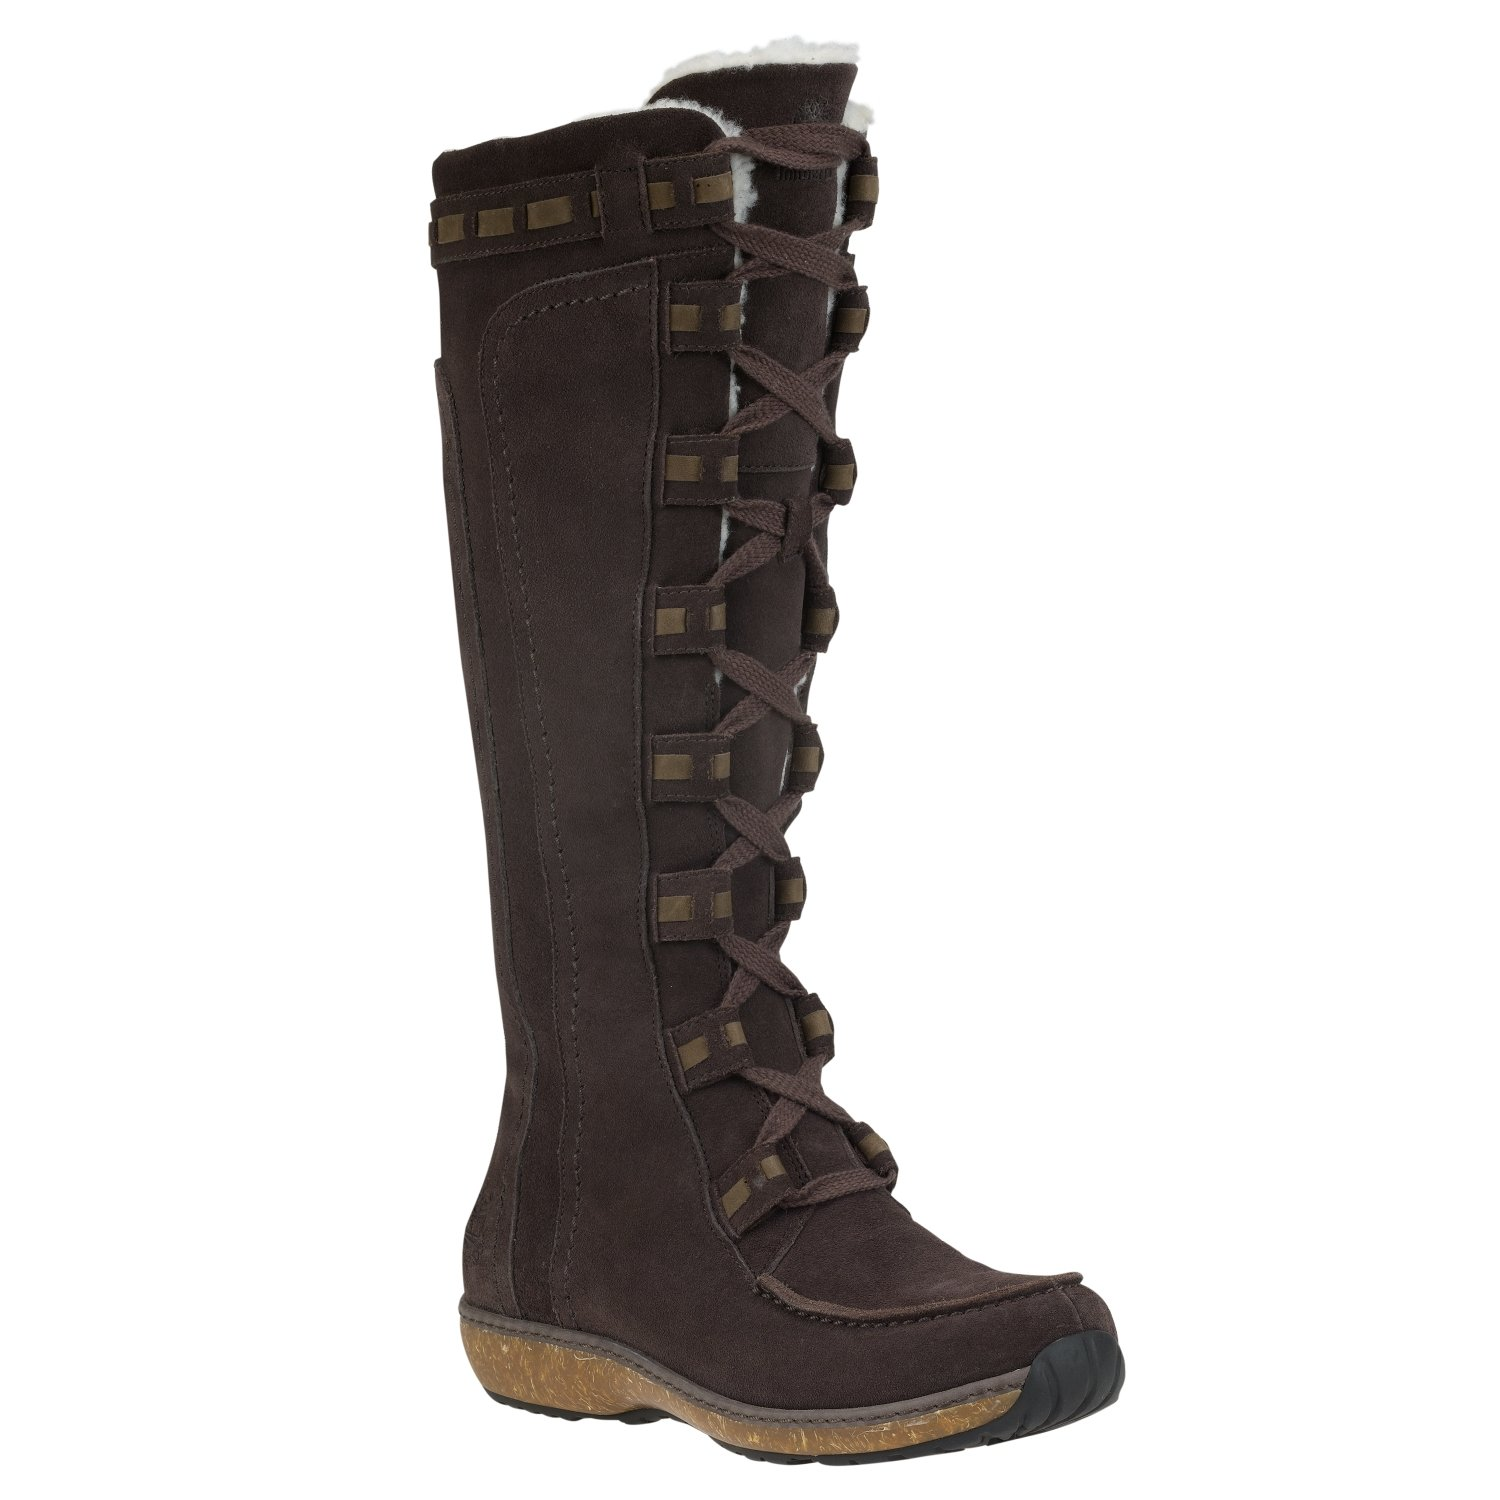 Earthkeepers Delle Donne Timberland Granby Stivale Alto LO4oVMPq